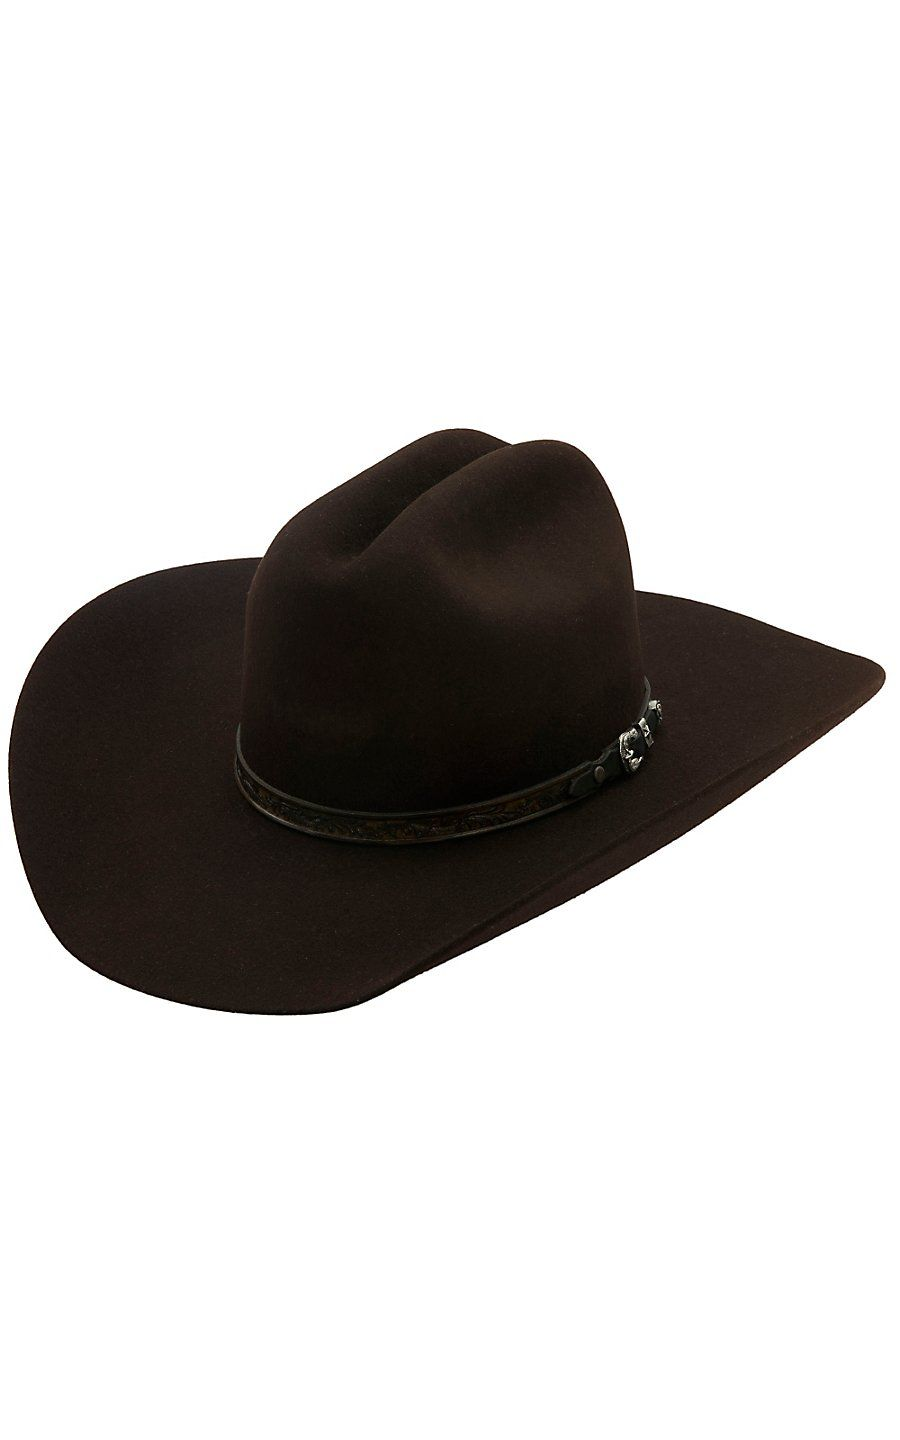 Larry Mahan Retro Fur Felt Cowboy Hat